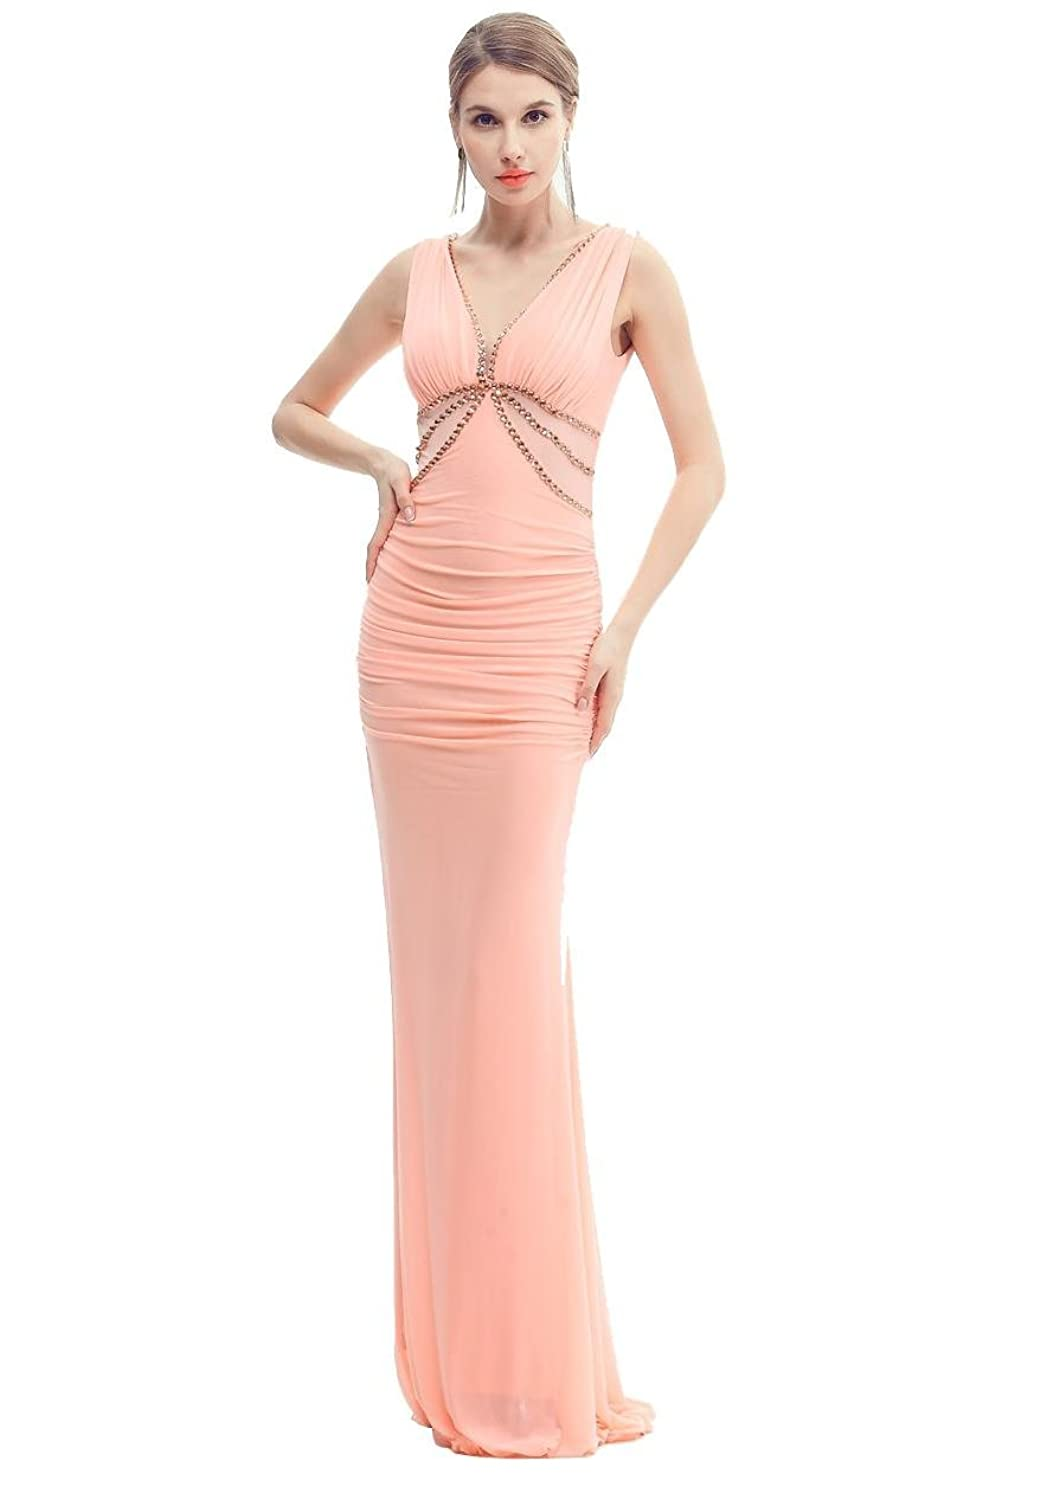 Beauty-Emily Mermaid Lace Ruched Long Deep V Backless Sleeveless Evening Dress